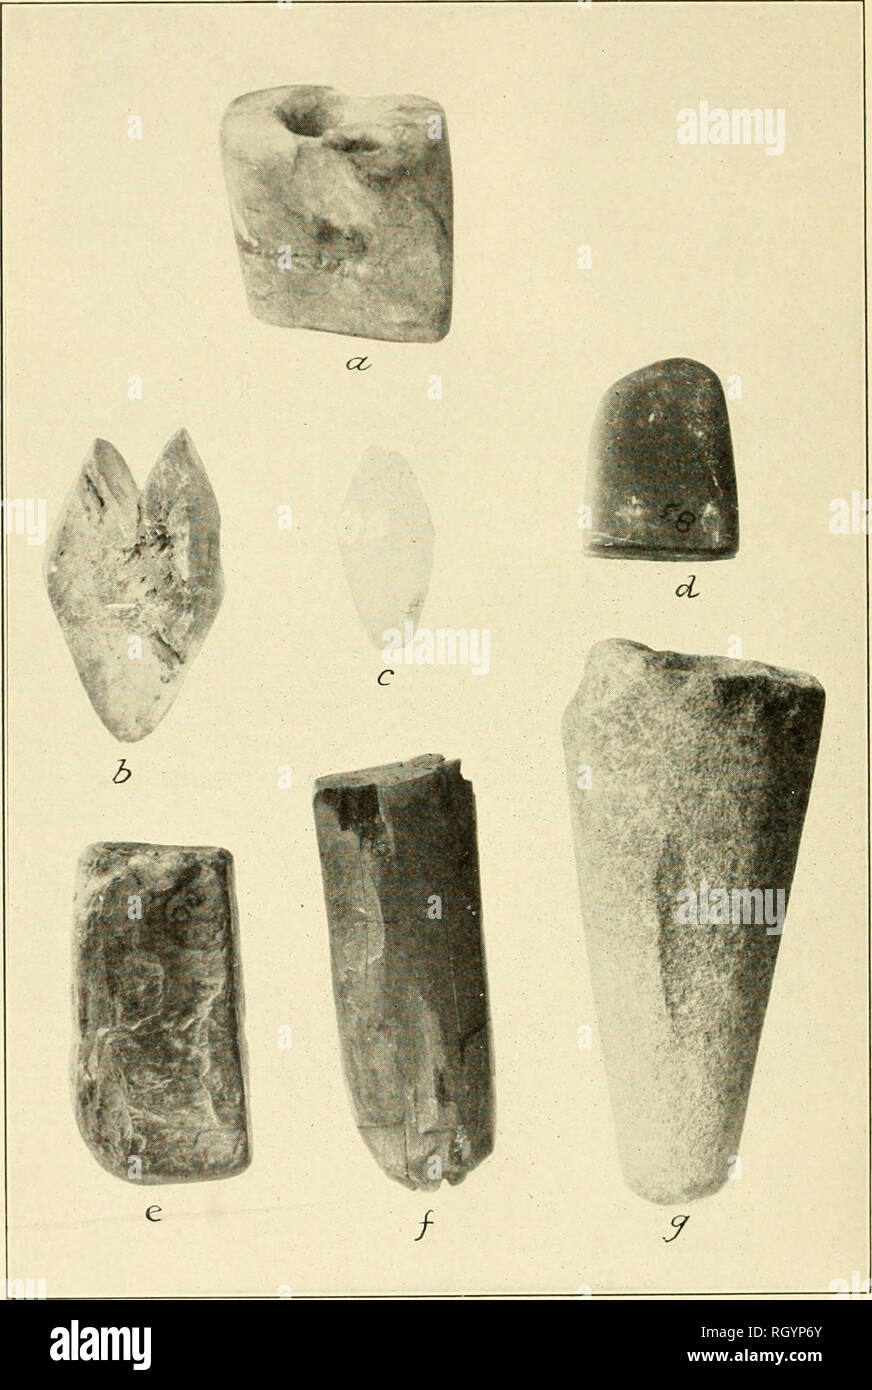 BUREAU OF AMERICAN ETHNOLOGY BULLETIN 92 PLATE 29 MISCELLANEOUS STONE